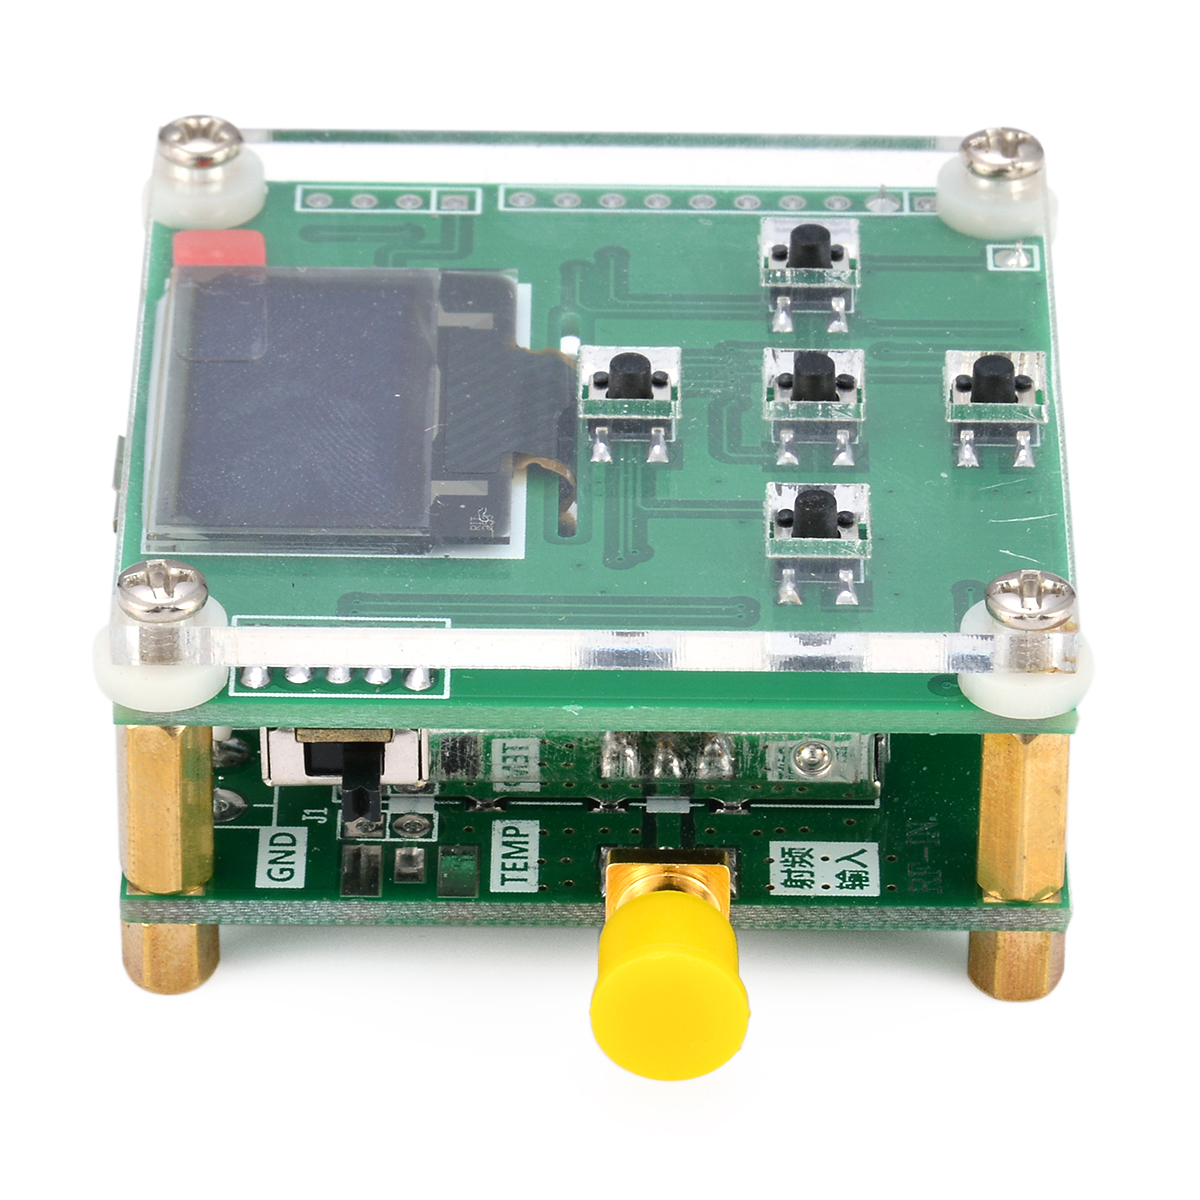 High Accuracy 8GHz RF Power Meter 1-8000Mhz OLED -55 - -5 dBm + Sofware RF Attenuation Value Mayitr Electrical Instruments